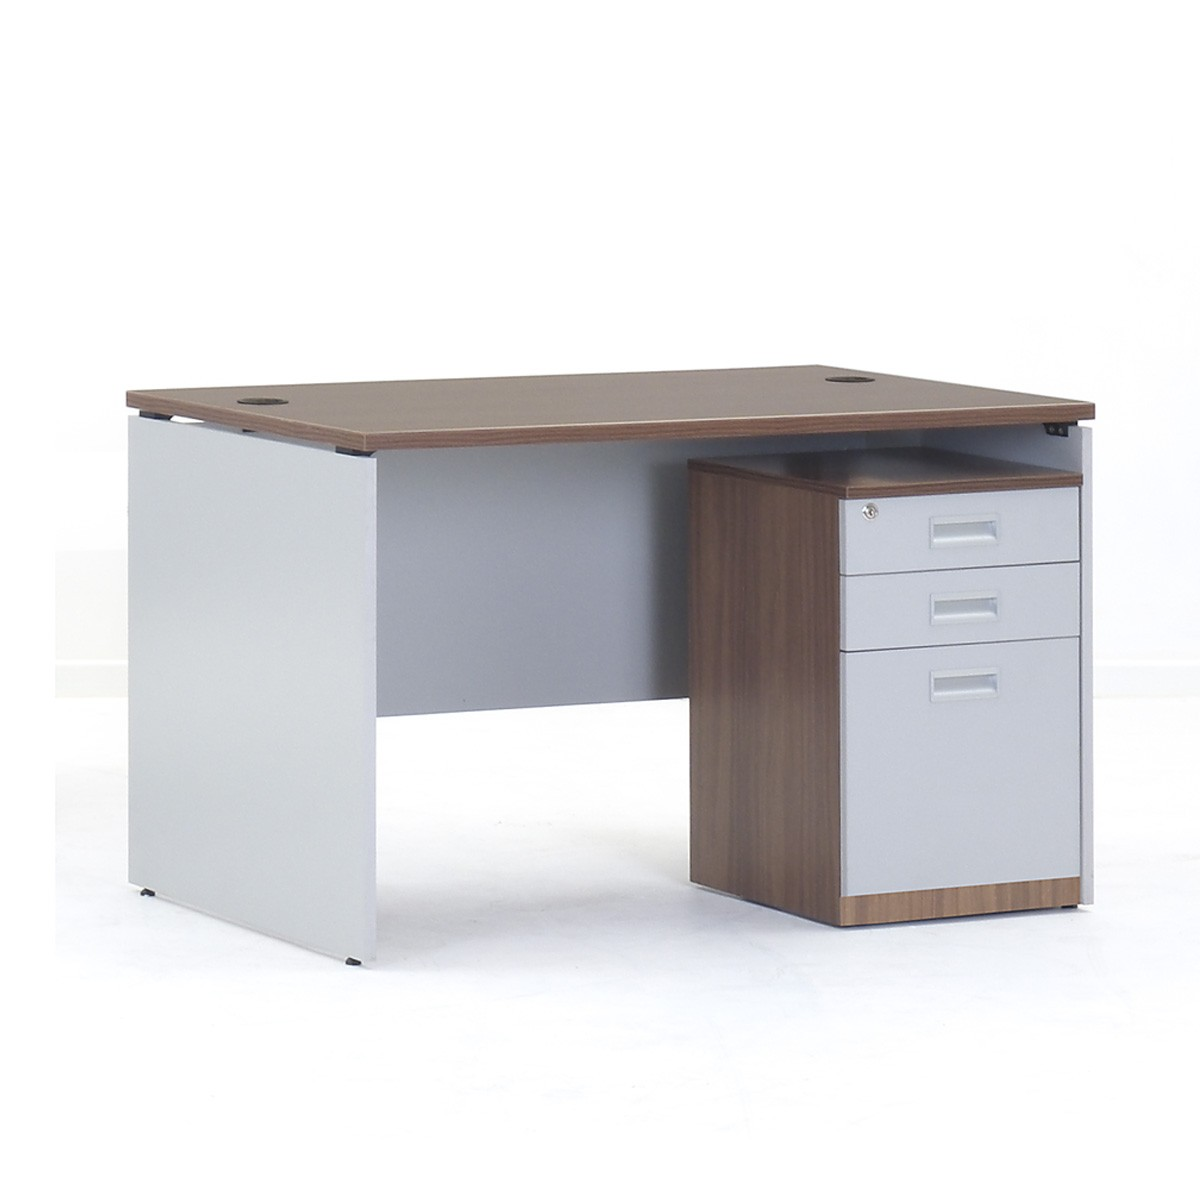 Featherlite Office Furniture : Buy Office Furniture Online